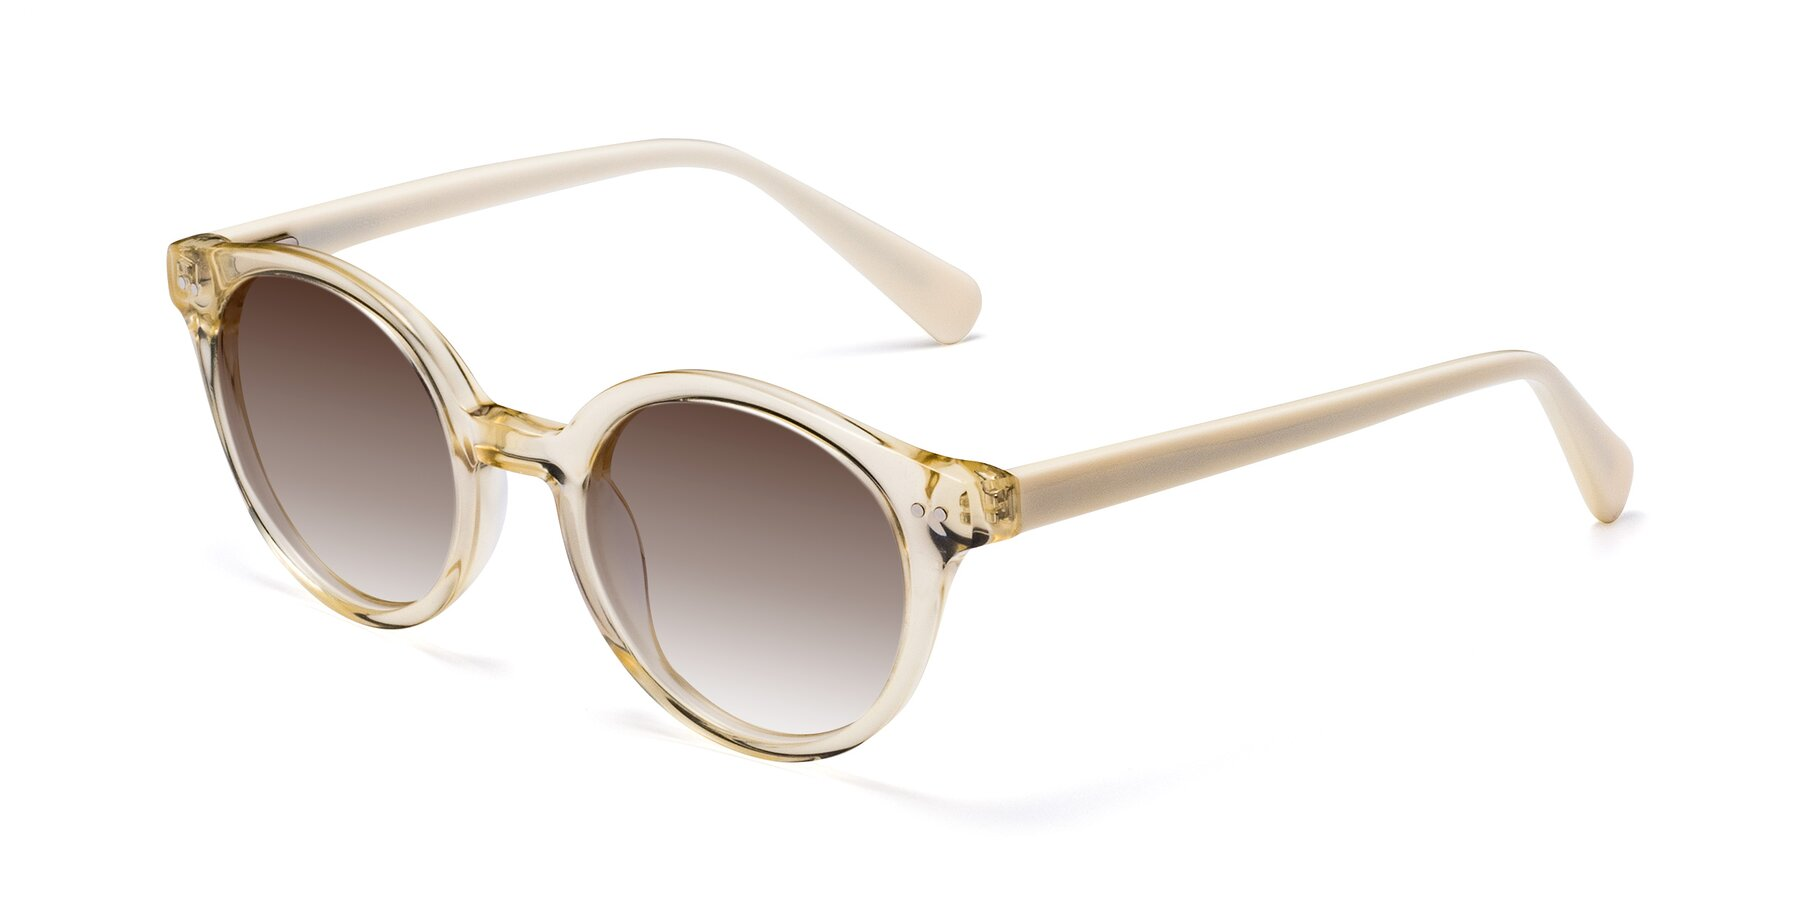 Angle of 17277 in Transparent Beige with Brown Gradient Lenses